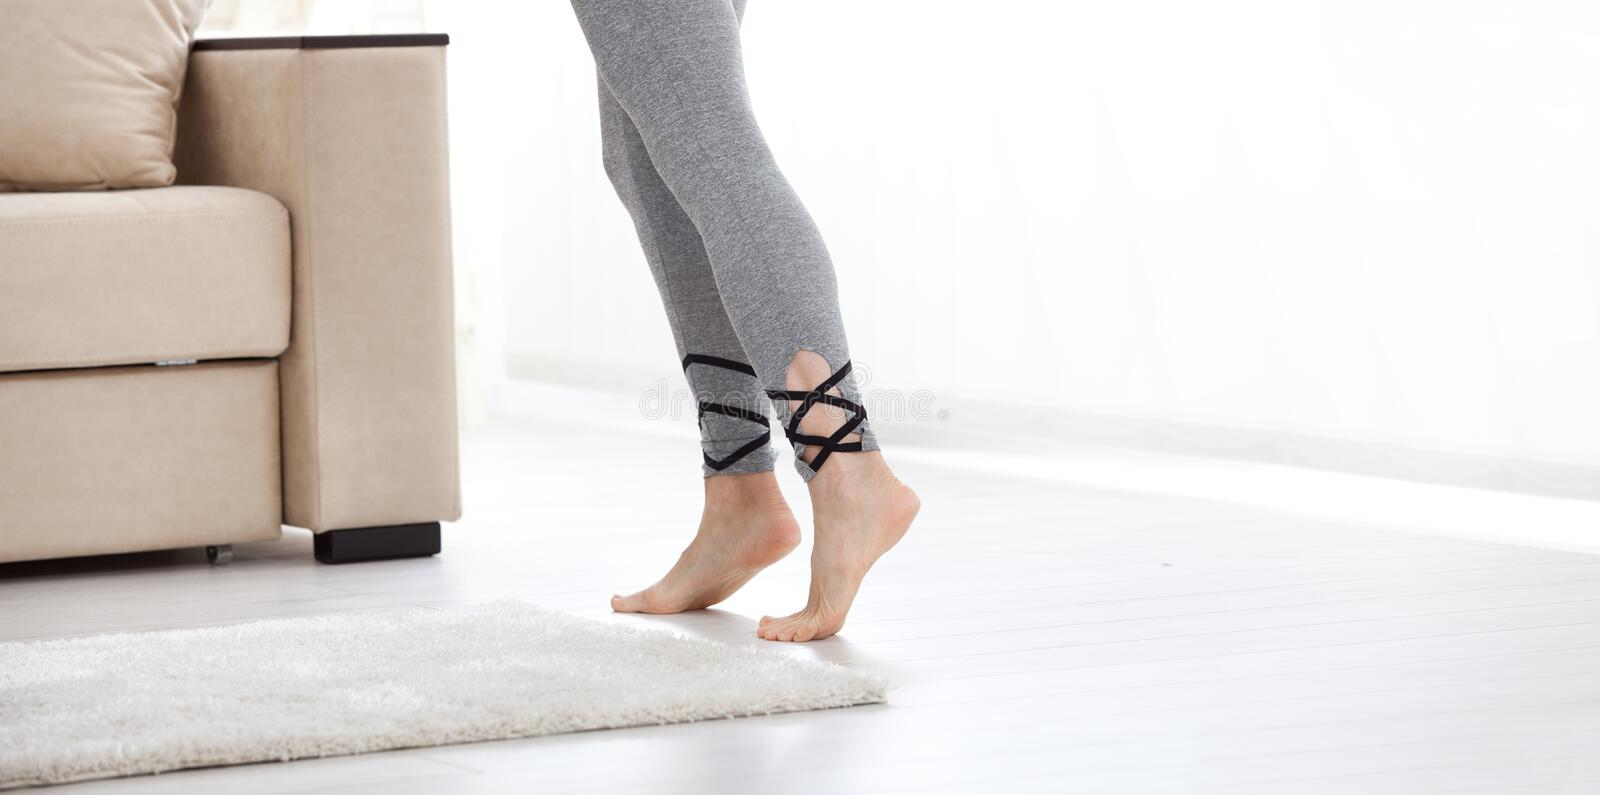 Warm floor concept. Closeup of female legs stepping by hardwood floor at home. Warm floor concept. Close-up of female legs stepping by hardwood floor at home stock image